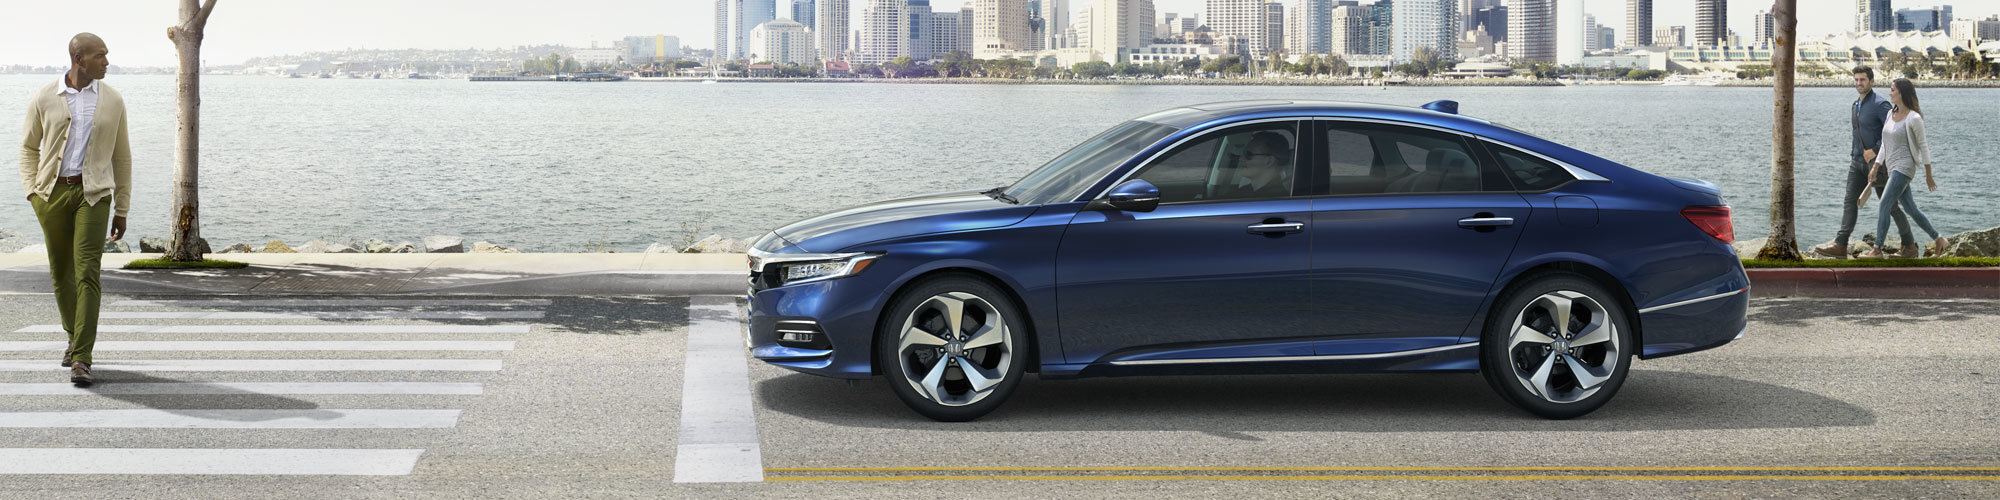 2019 Honda Accord | Troy Honda | New Hondas & Used Vehicles